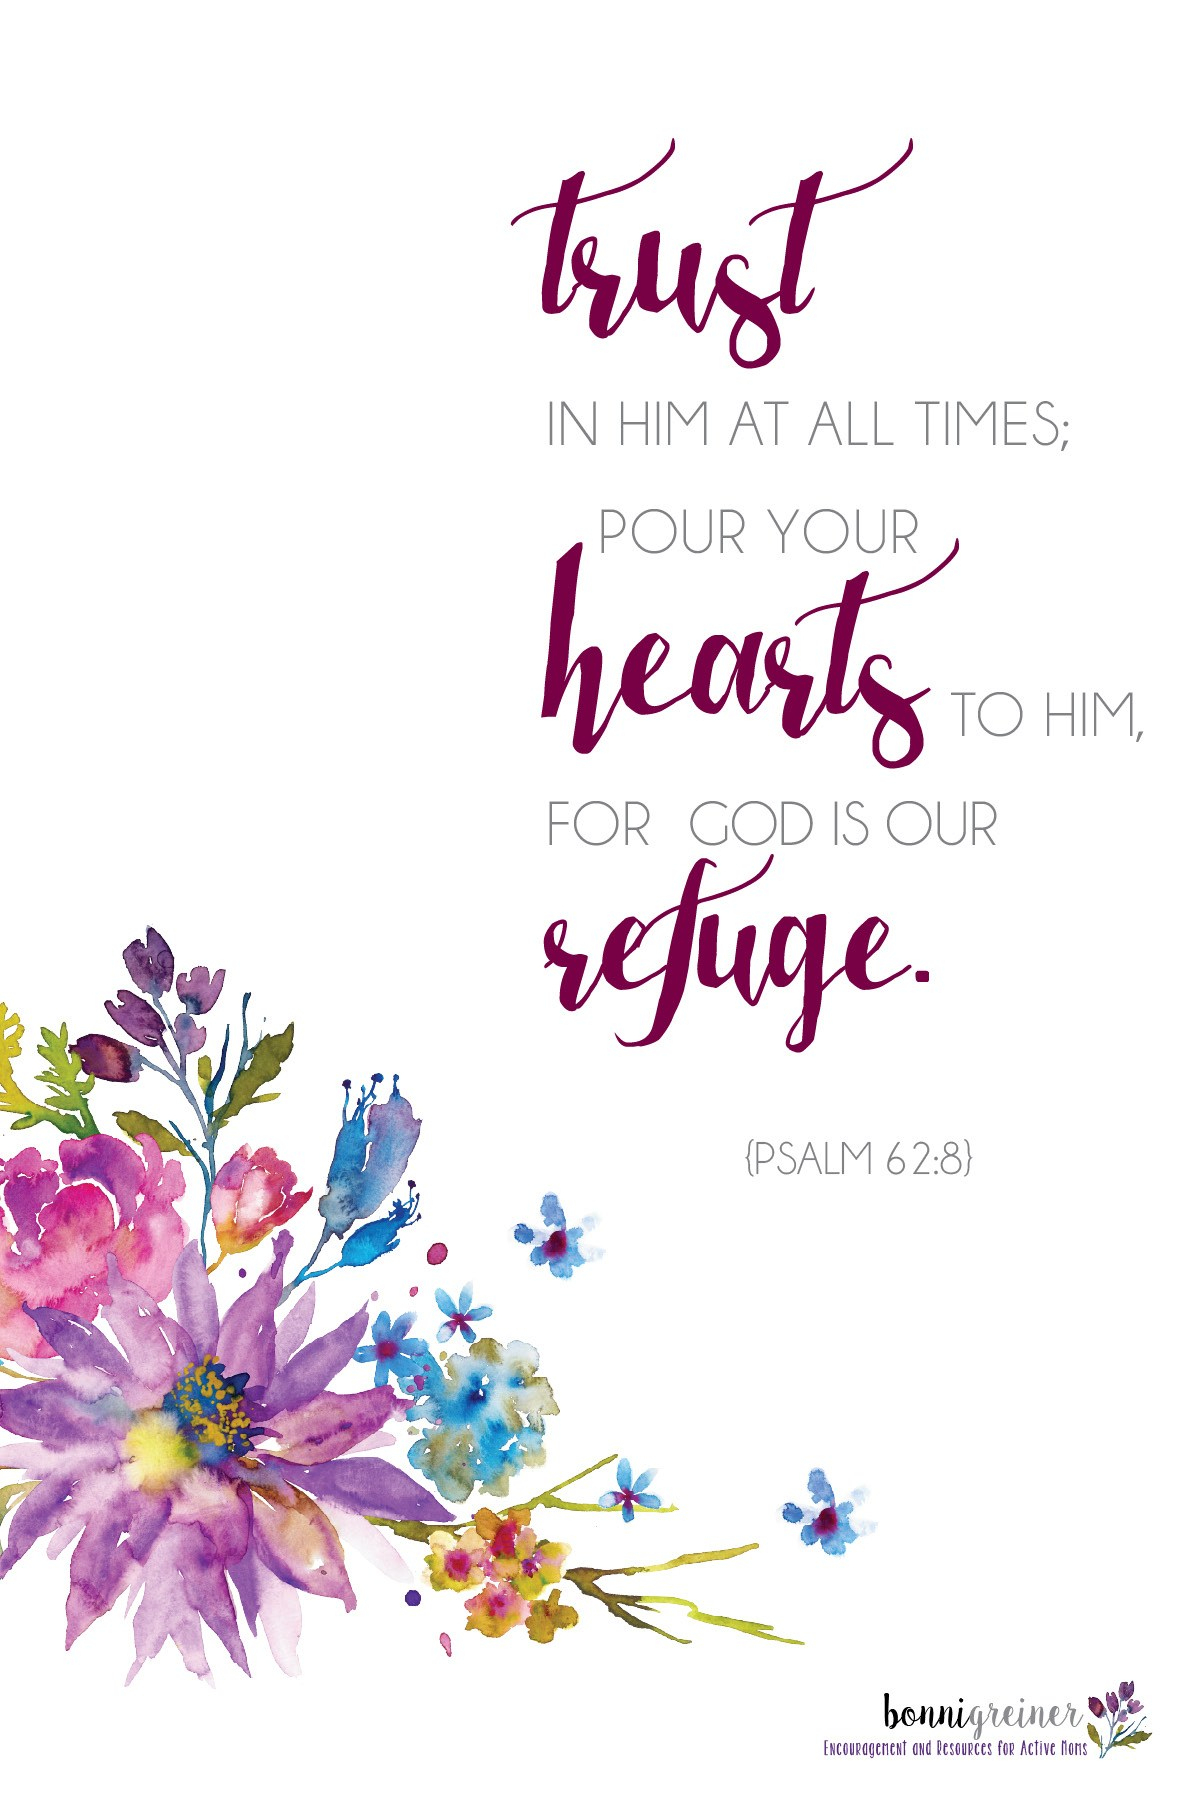 Free Printable Bible Verses And Sayings | Momexample - Free Printable Inspirational Bible Verses